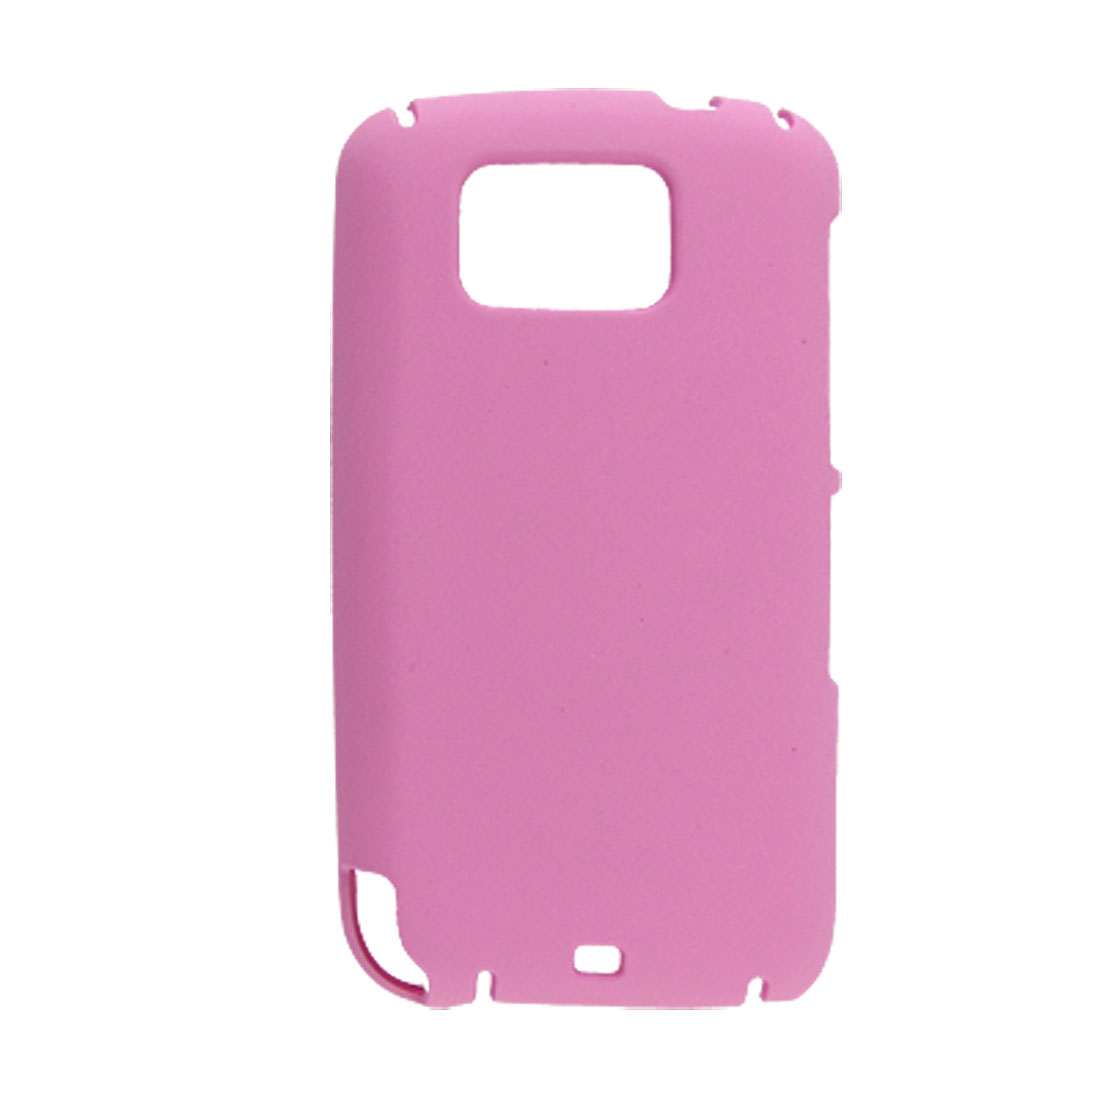 Light Pink Rubberized Plastic Case for HTC Touch2 T3333